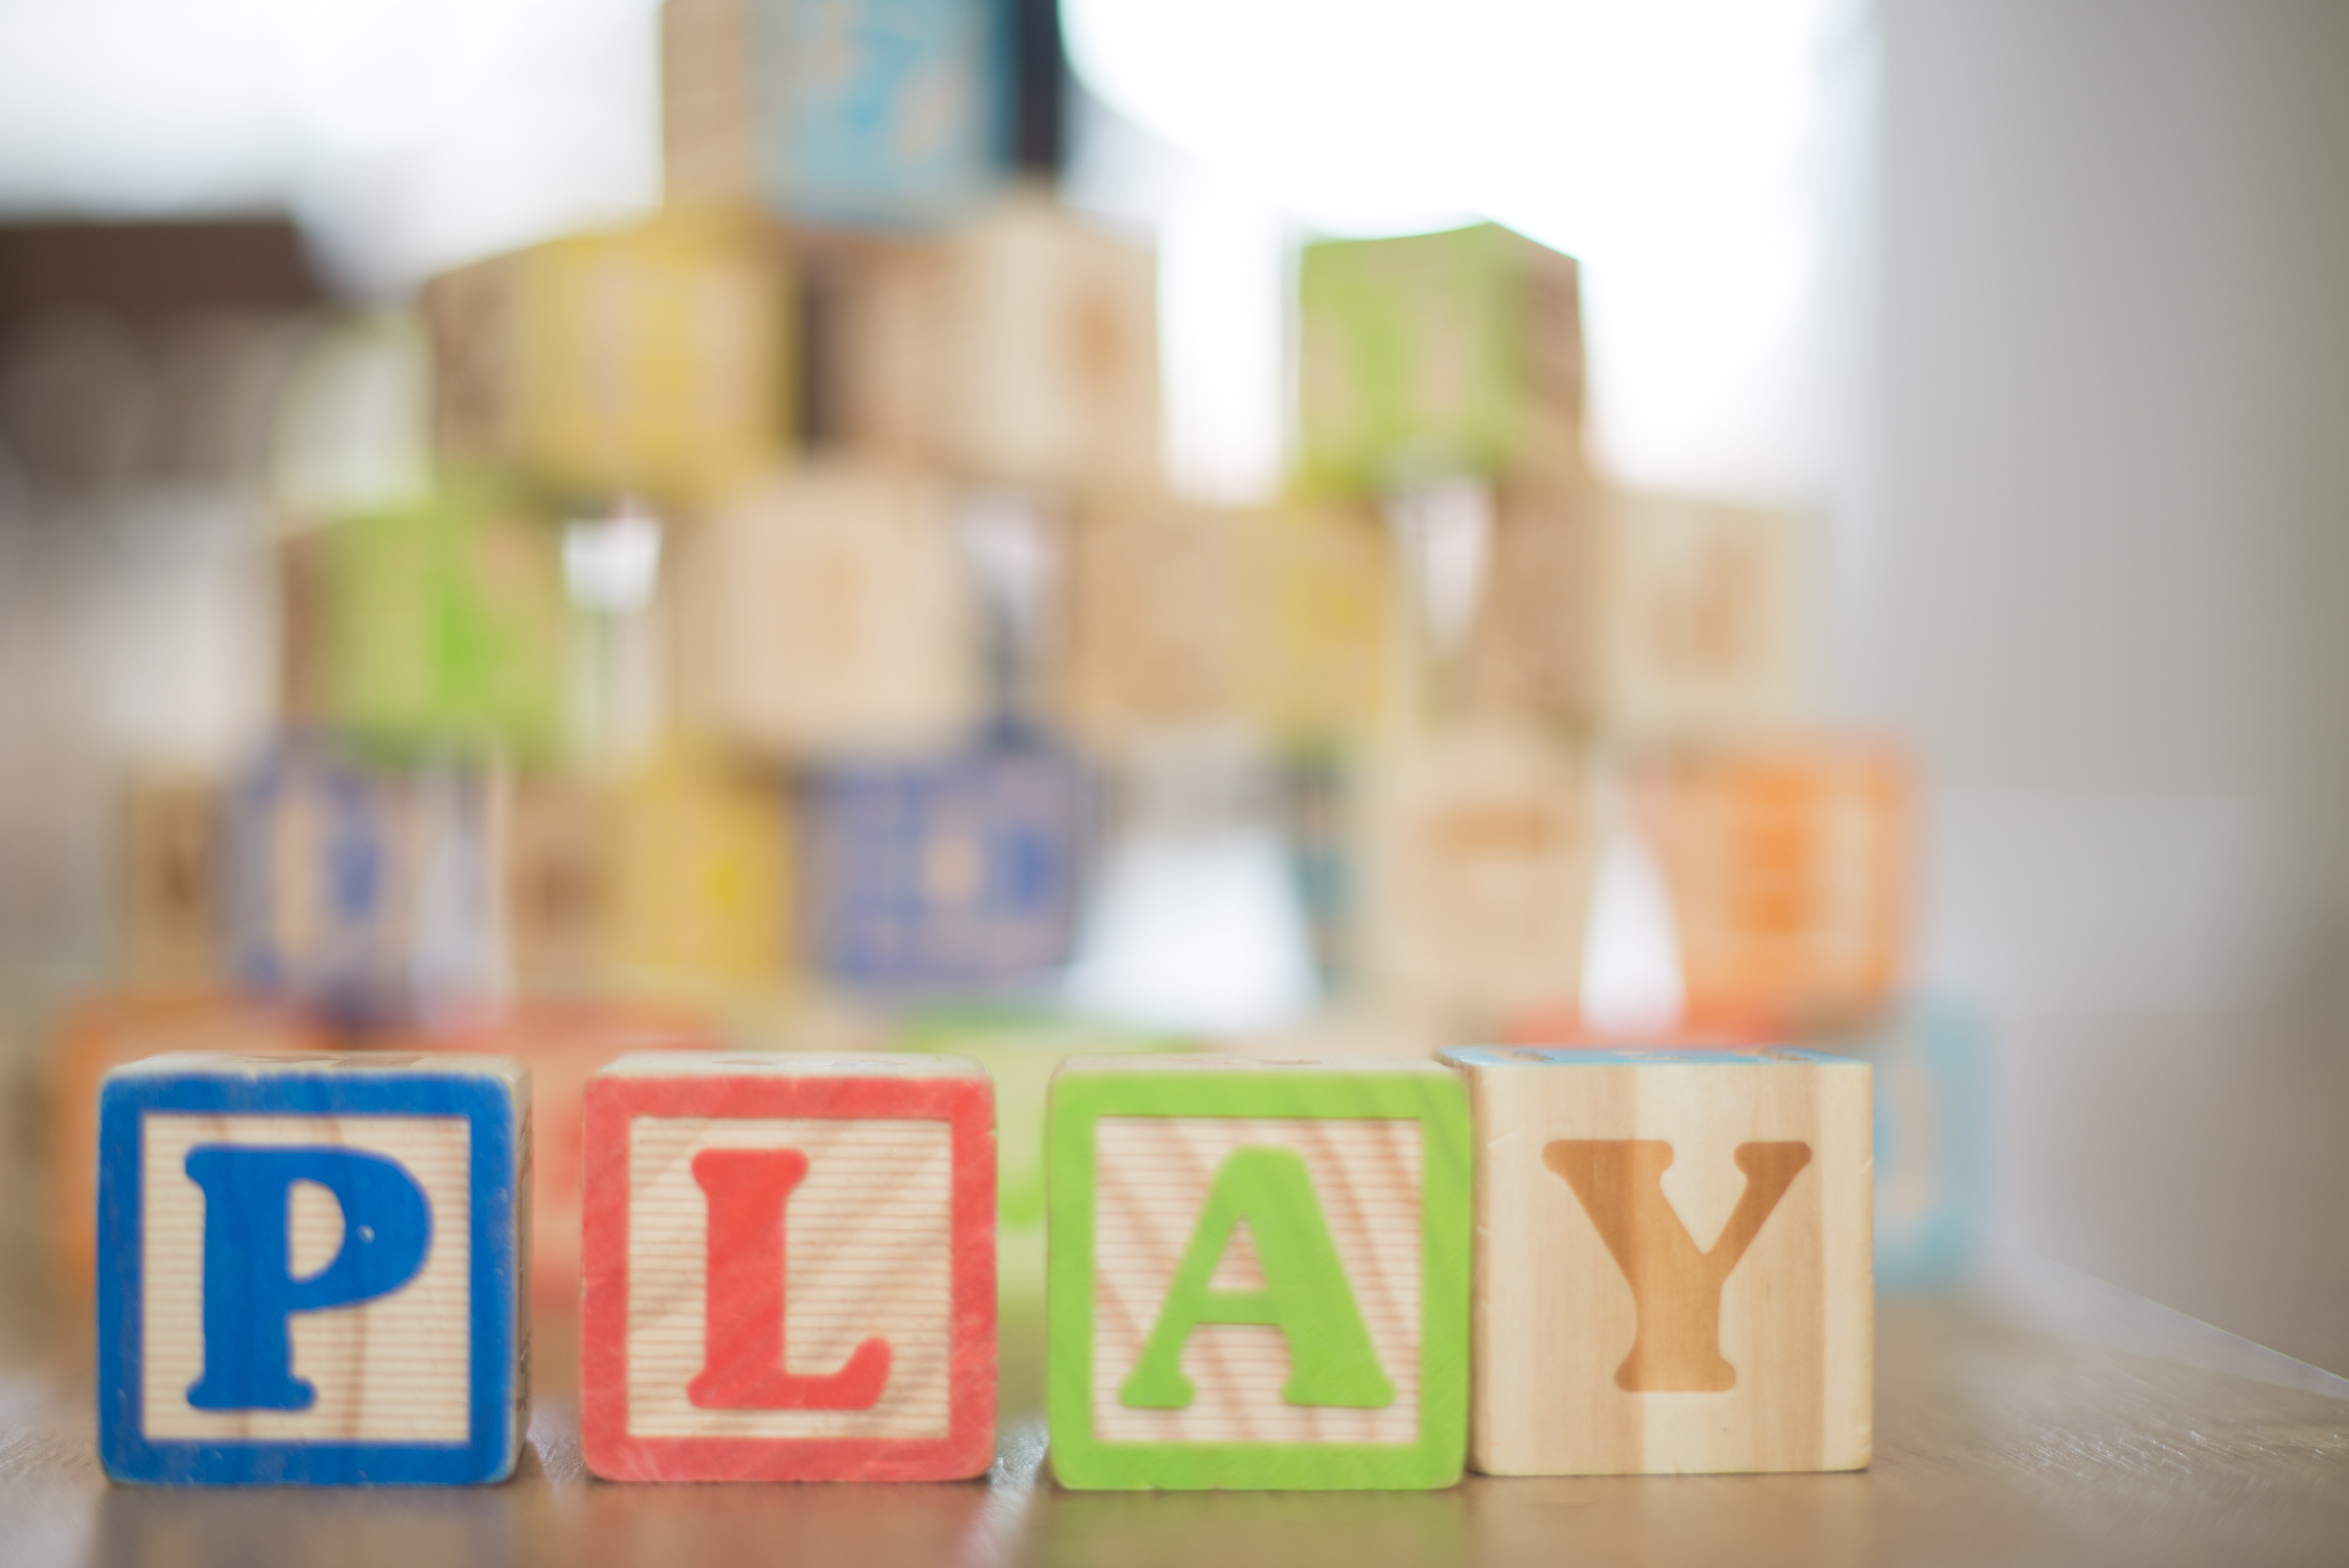 Image of wooden blocks spelling out PLAY.